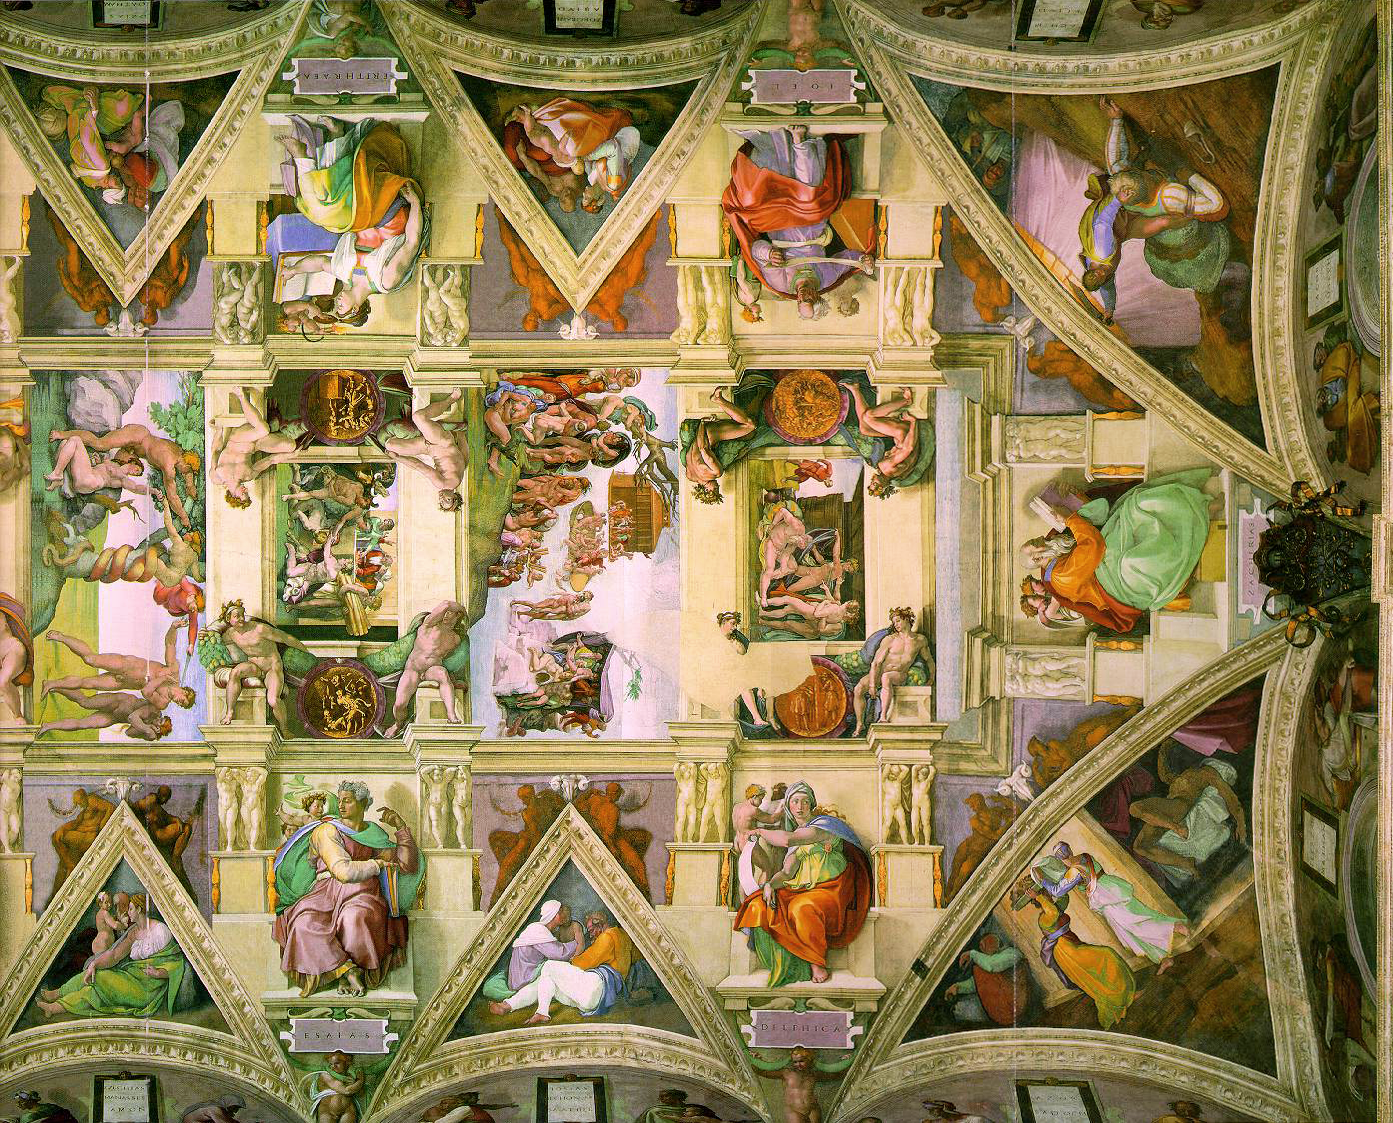 Michelangelo's Painting of the Sistine Chapel Ceiling